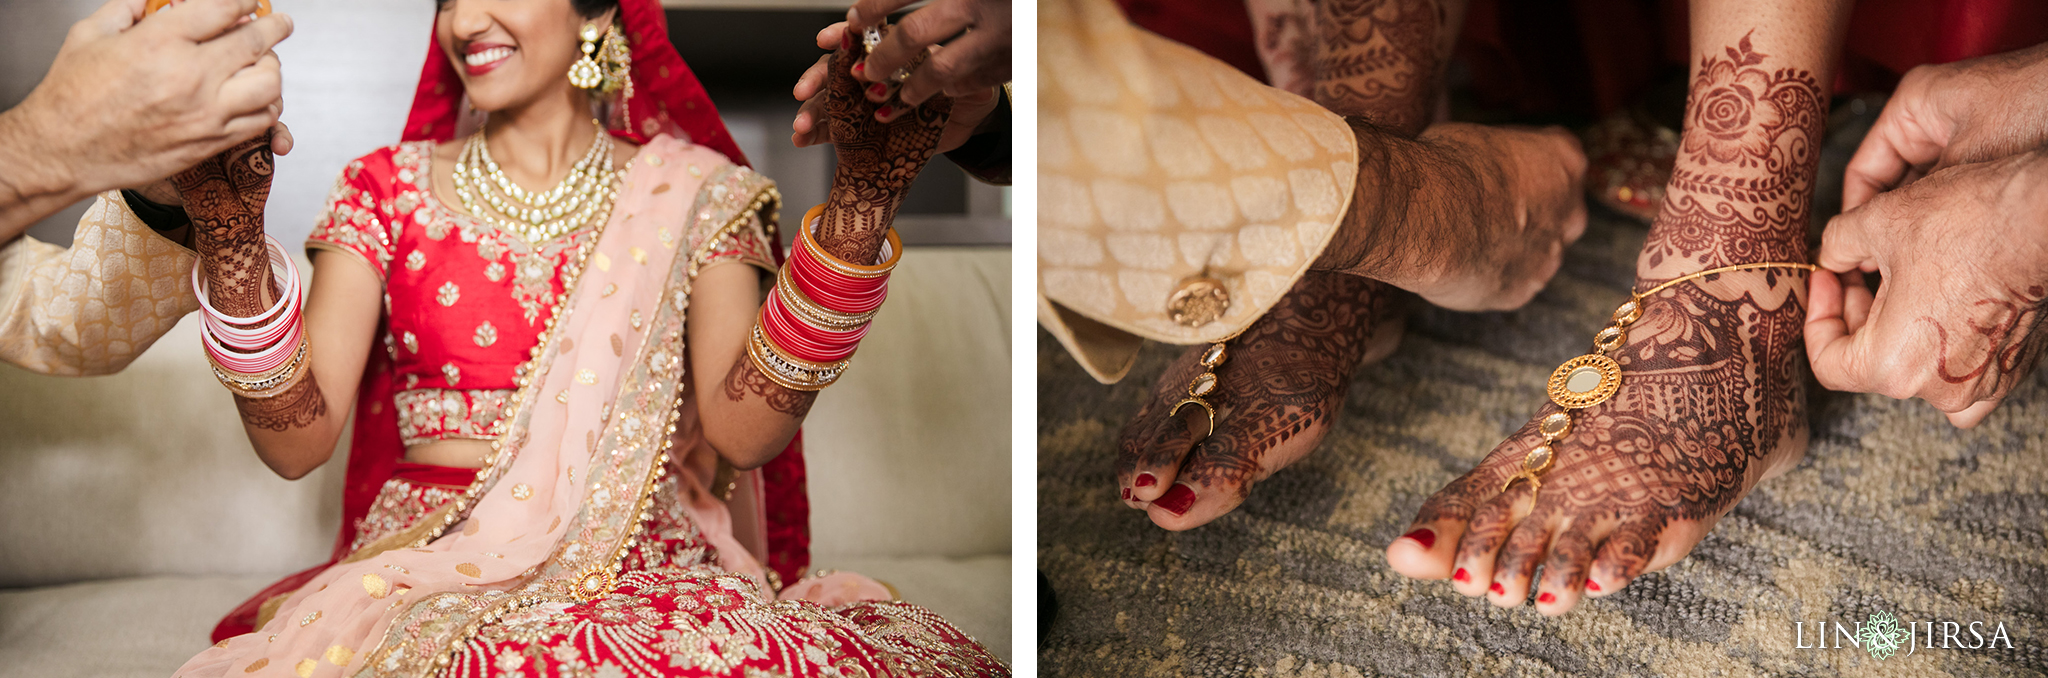 22 Ritz Carlton Laguna Niguel Indian Wedding Photography